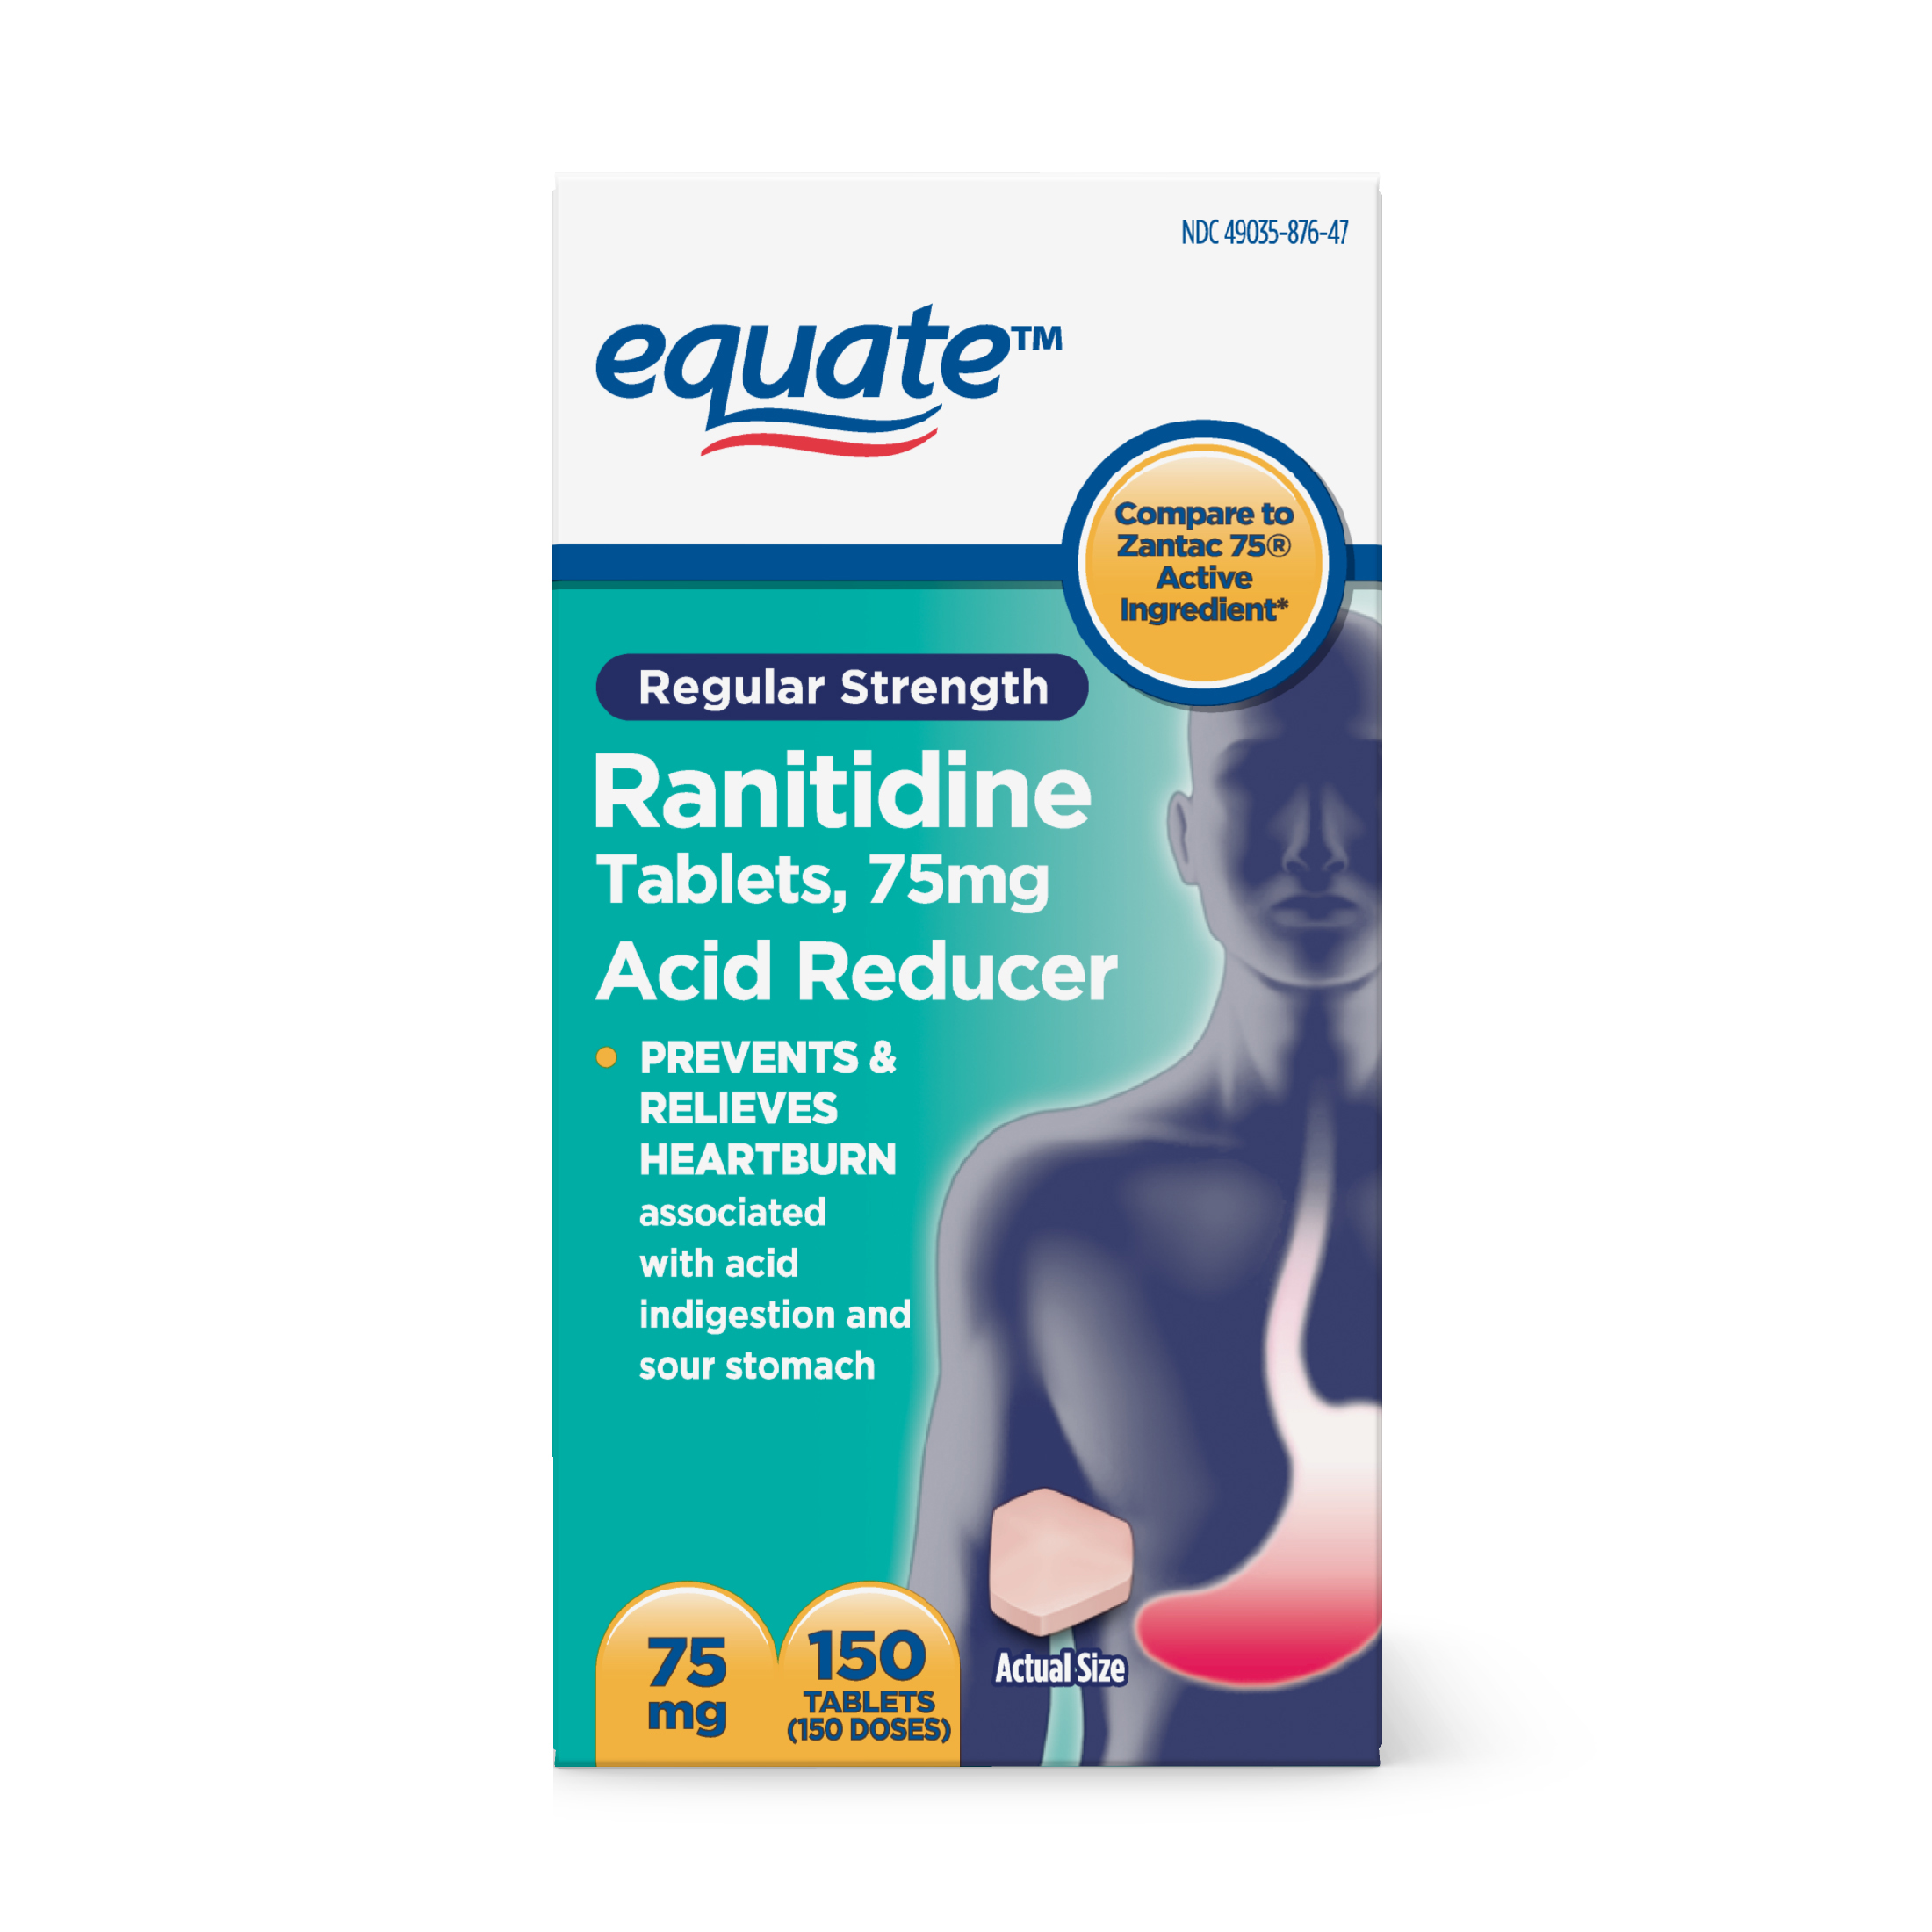 Equate Regular Strength Acid Reducer Ranitidine Tablets, 75 mg, 150 Ct